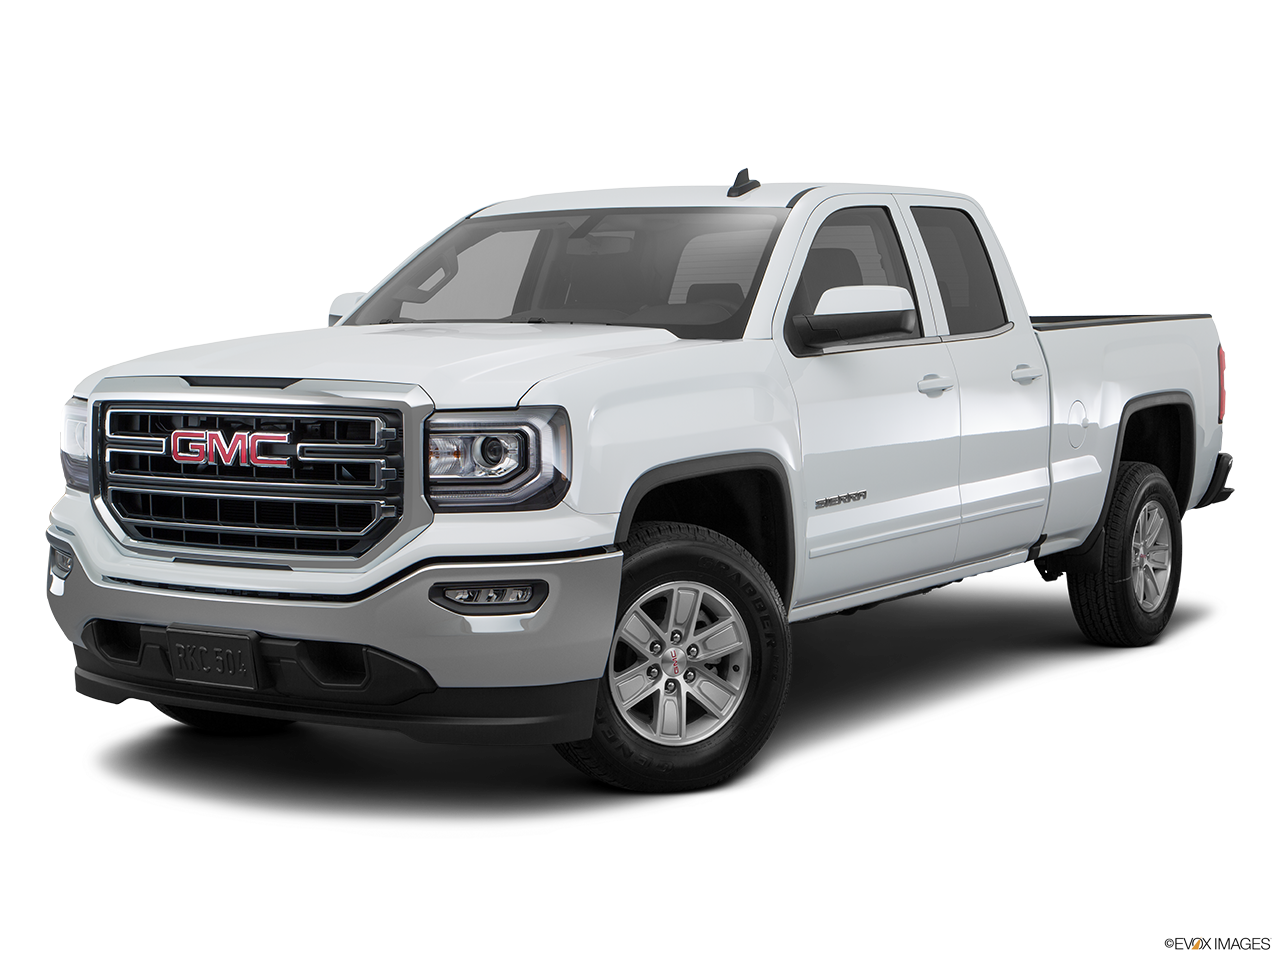 2016 Gmc Sierra 1500 Dealer In Orange County Hardin